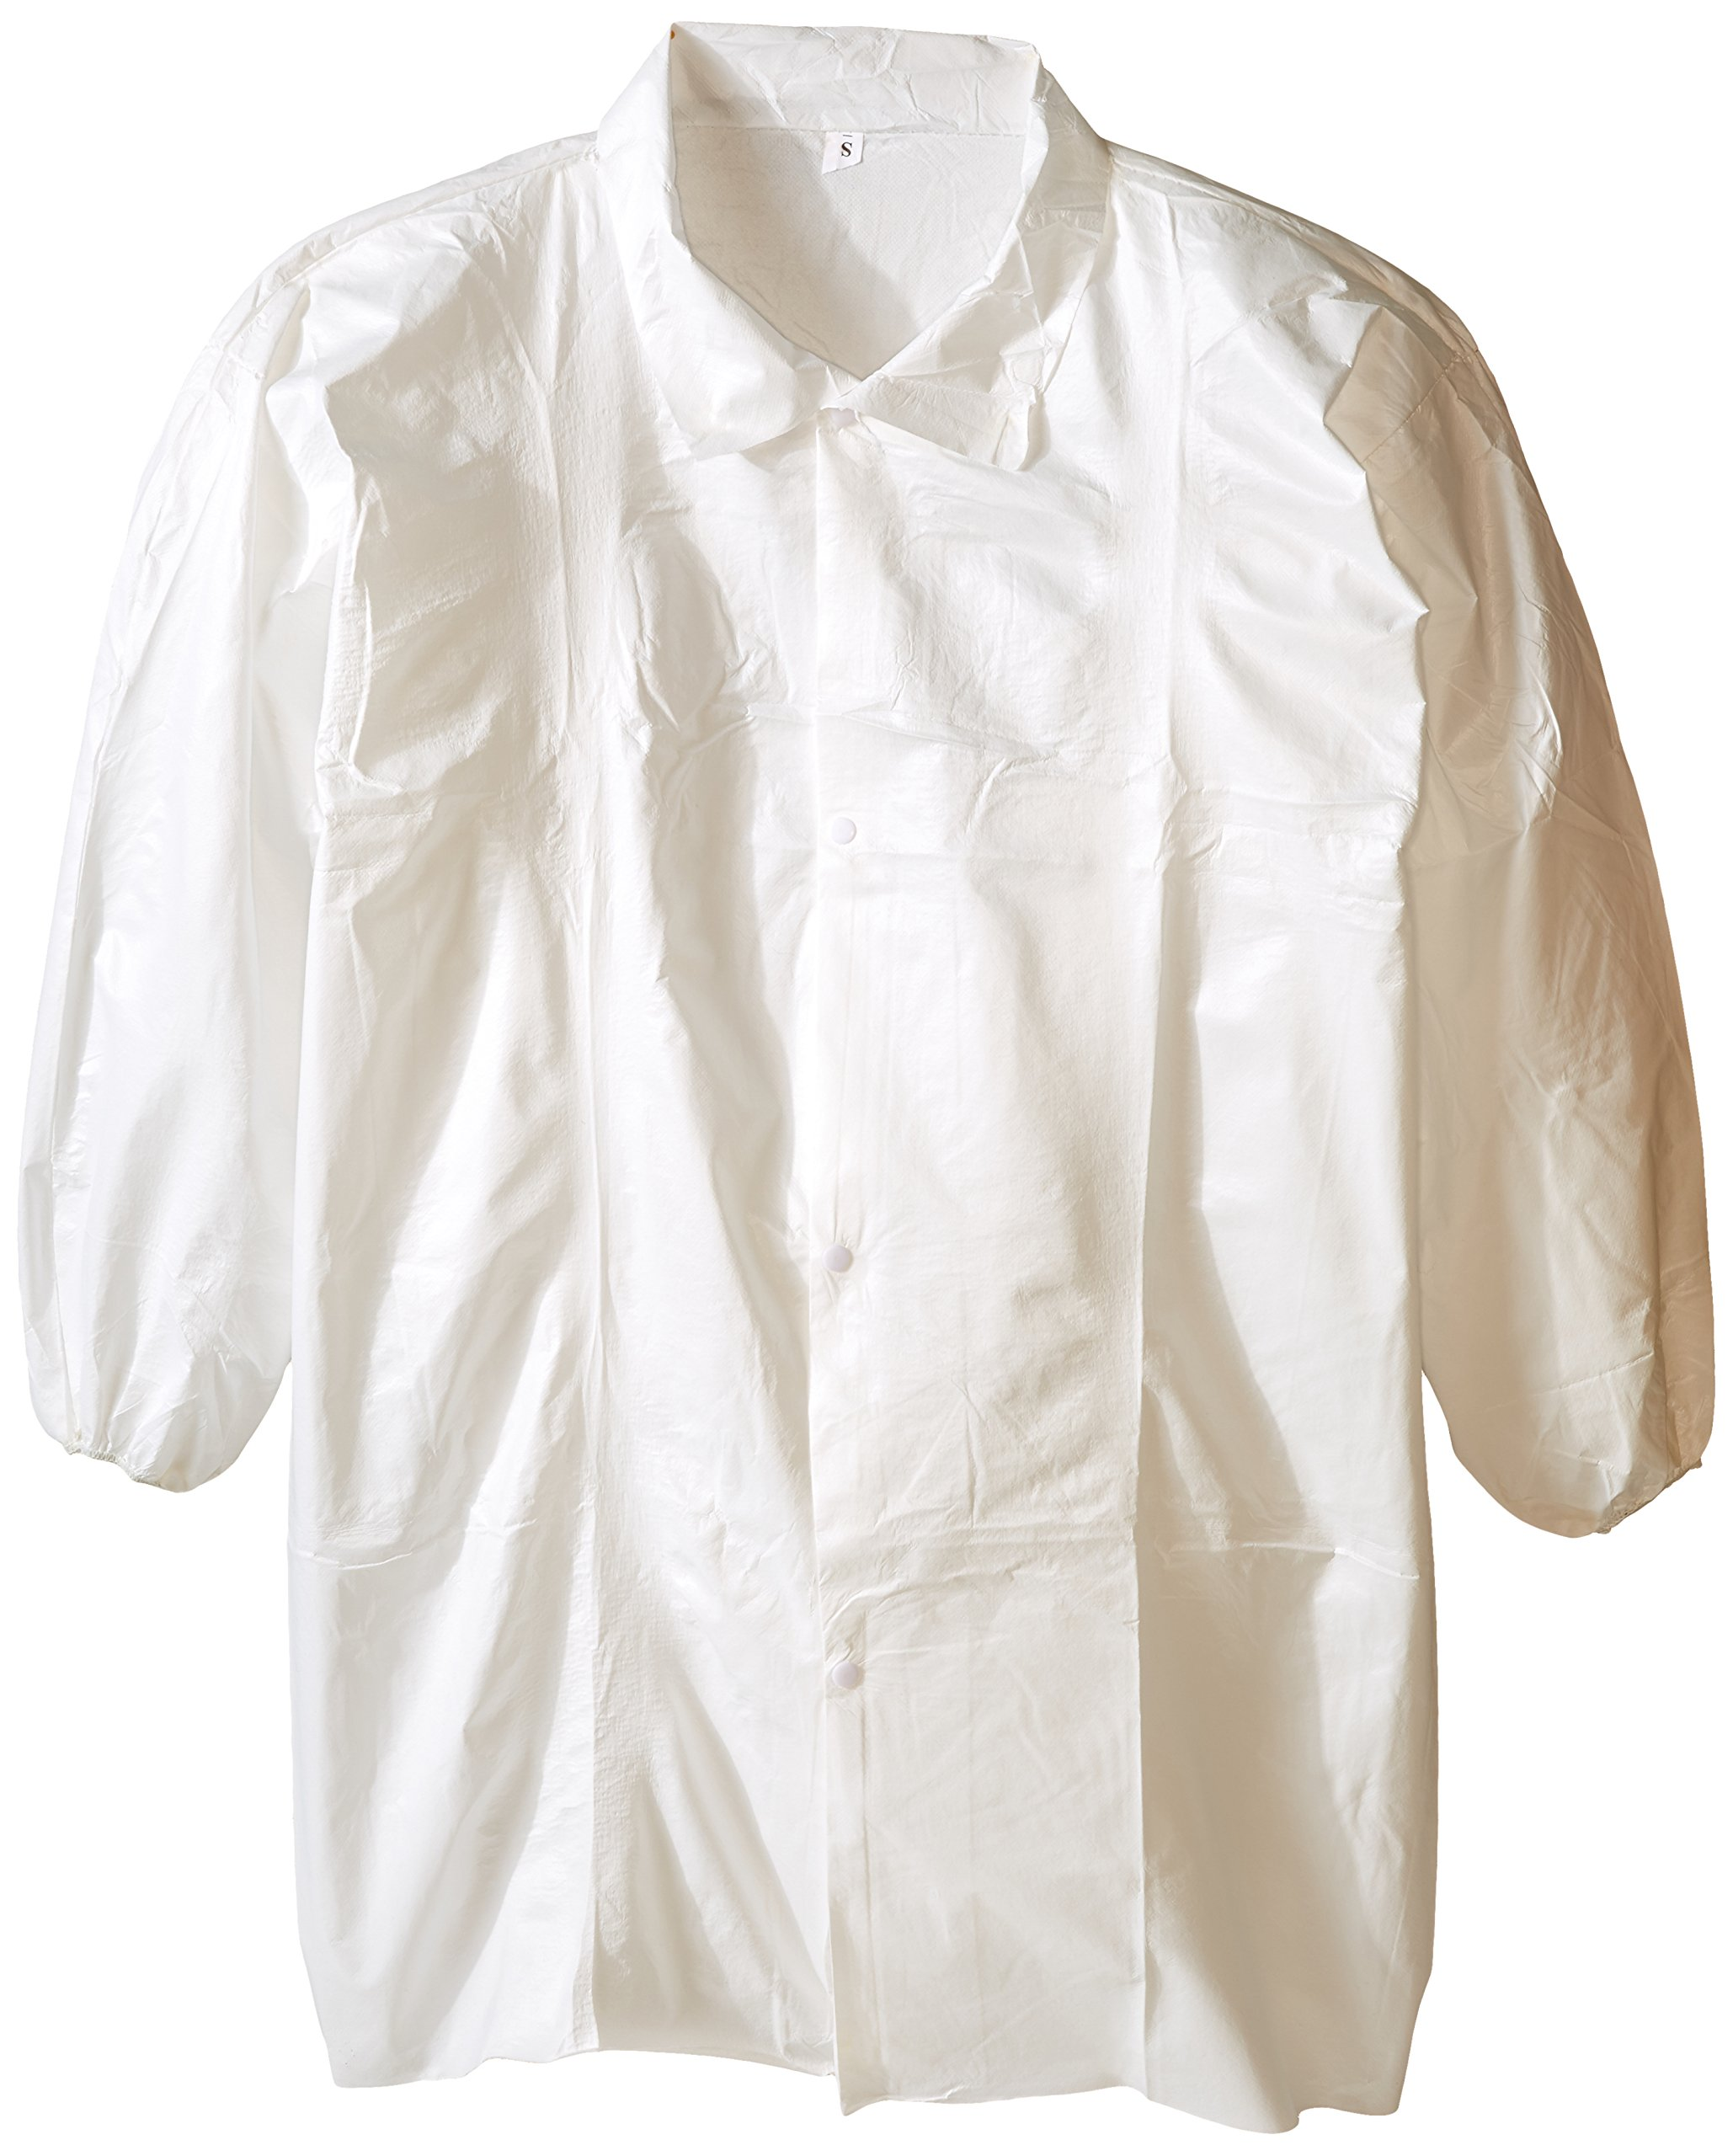 DanGuard DSP347 Microporous Fabric Snap Front Lab Coat with Fold Down Collar, Elastic Wrists, Small, White (Case of 30)